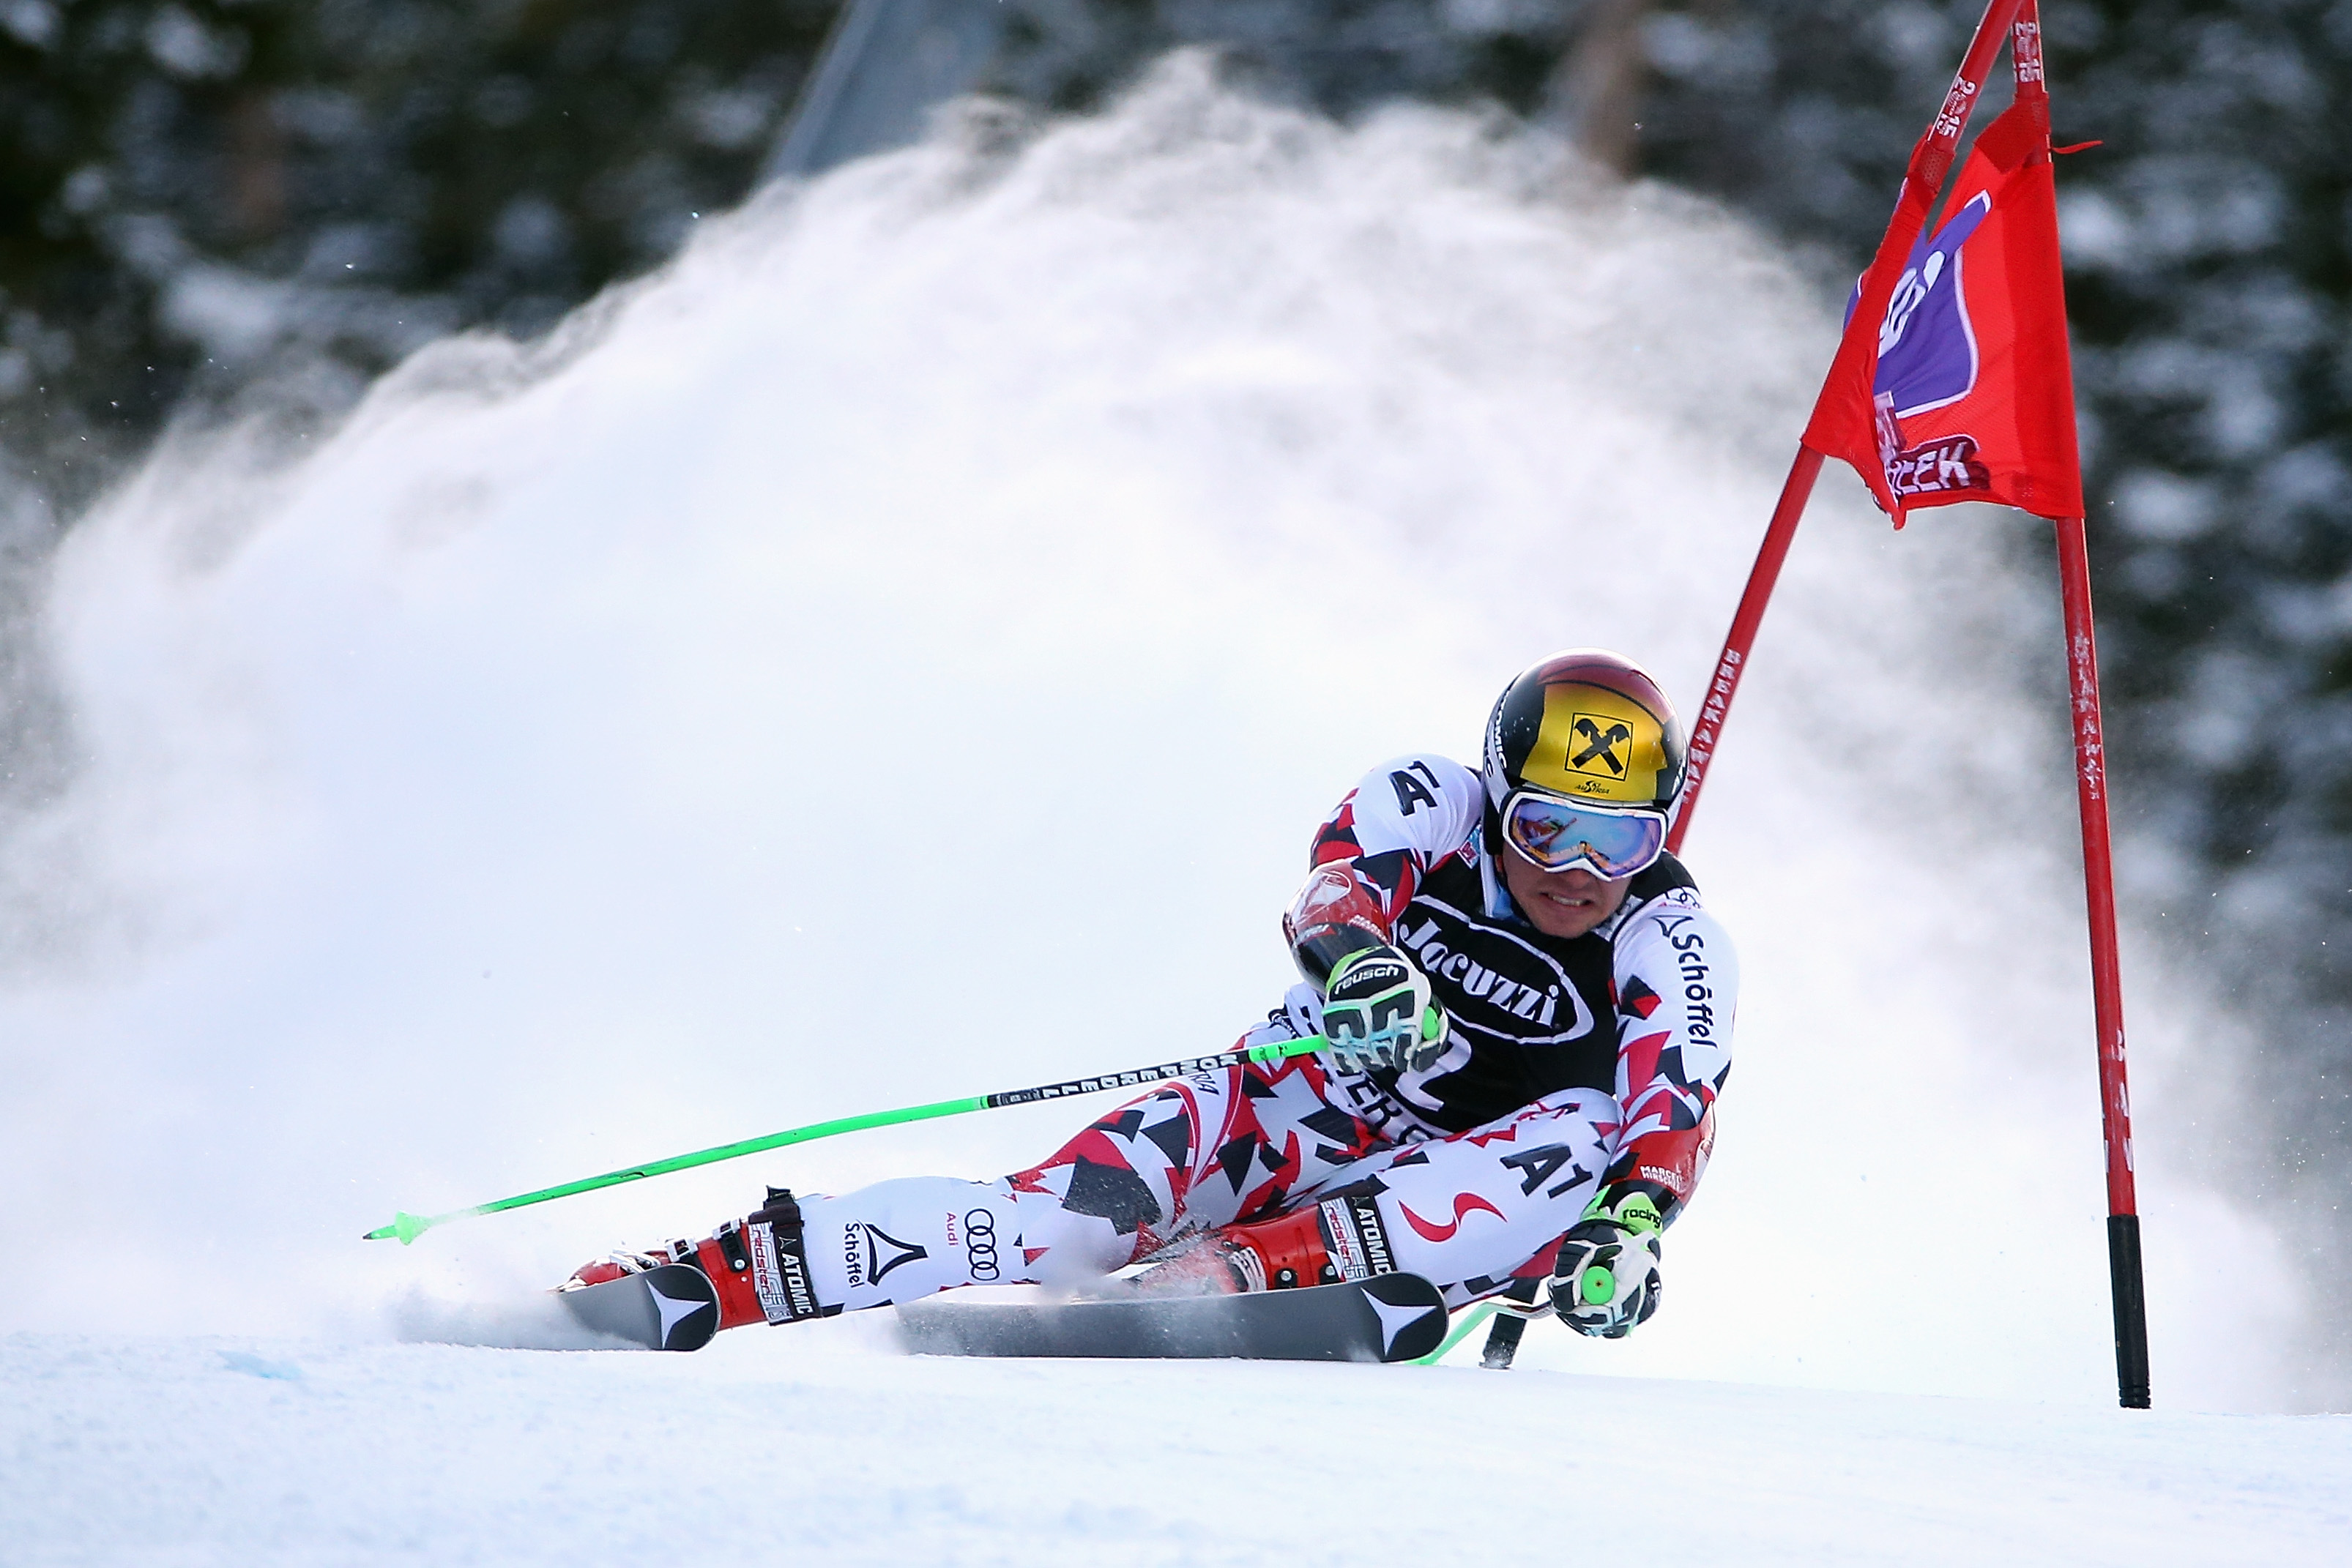 BEAVER CREEK, CO - DECEMBER 06:  Marcel Hirscher of Austria skis the course during the first run of the giant slalom at the 2015 Audi FIS Ski World Cup on December 6, 2015 in Beaver Creek, Colorado.  (Photo by Doug Pensinger/Getty Images)